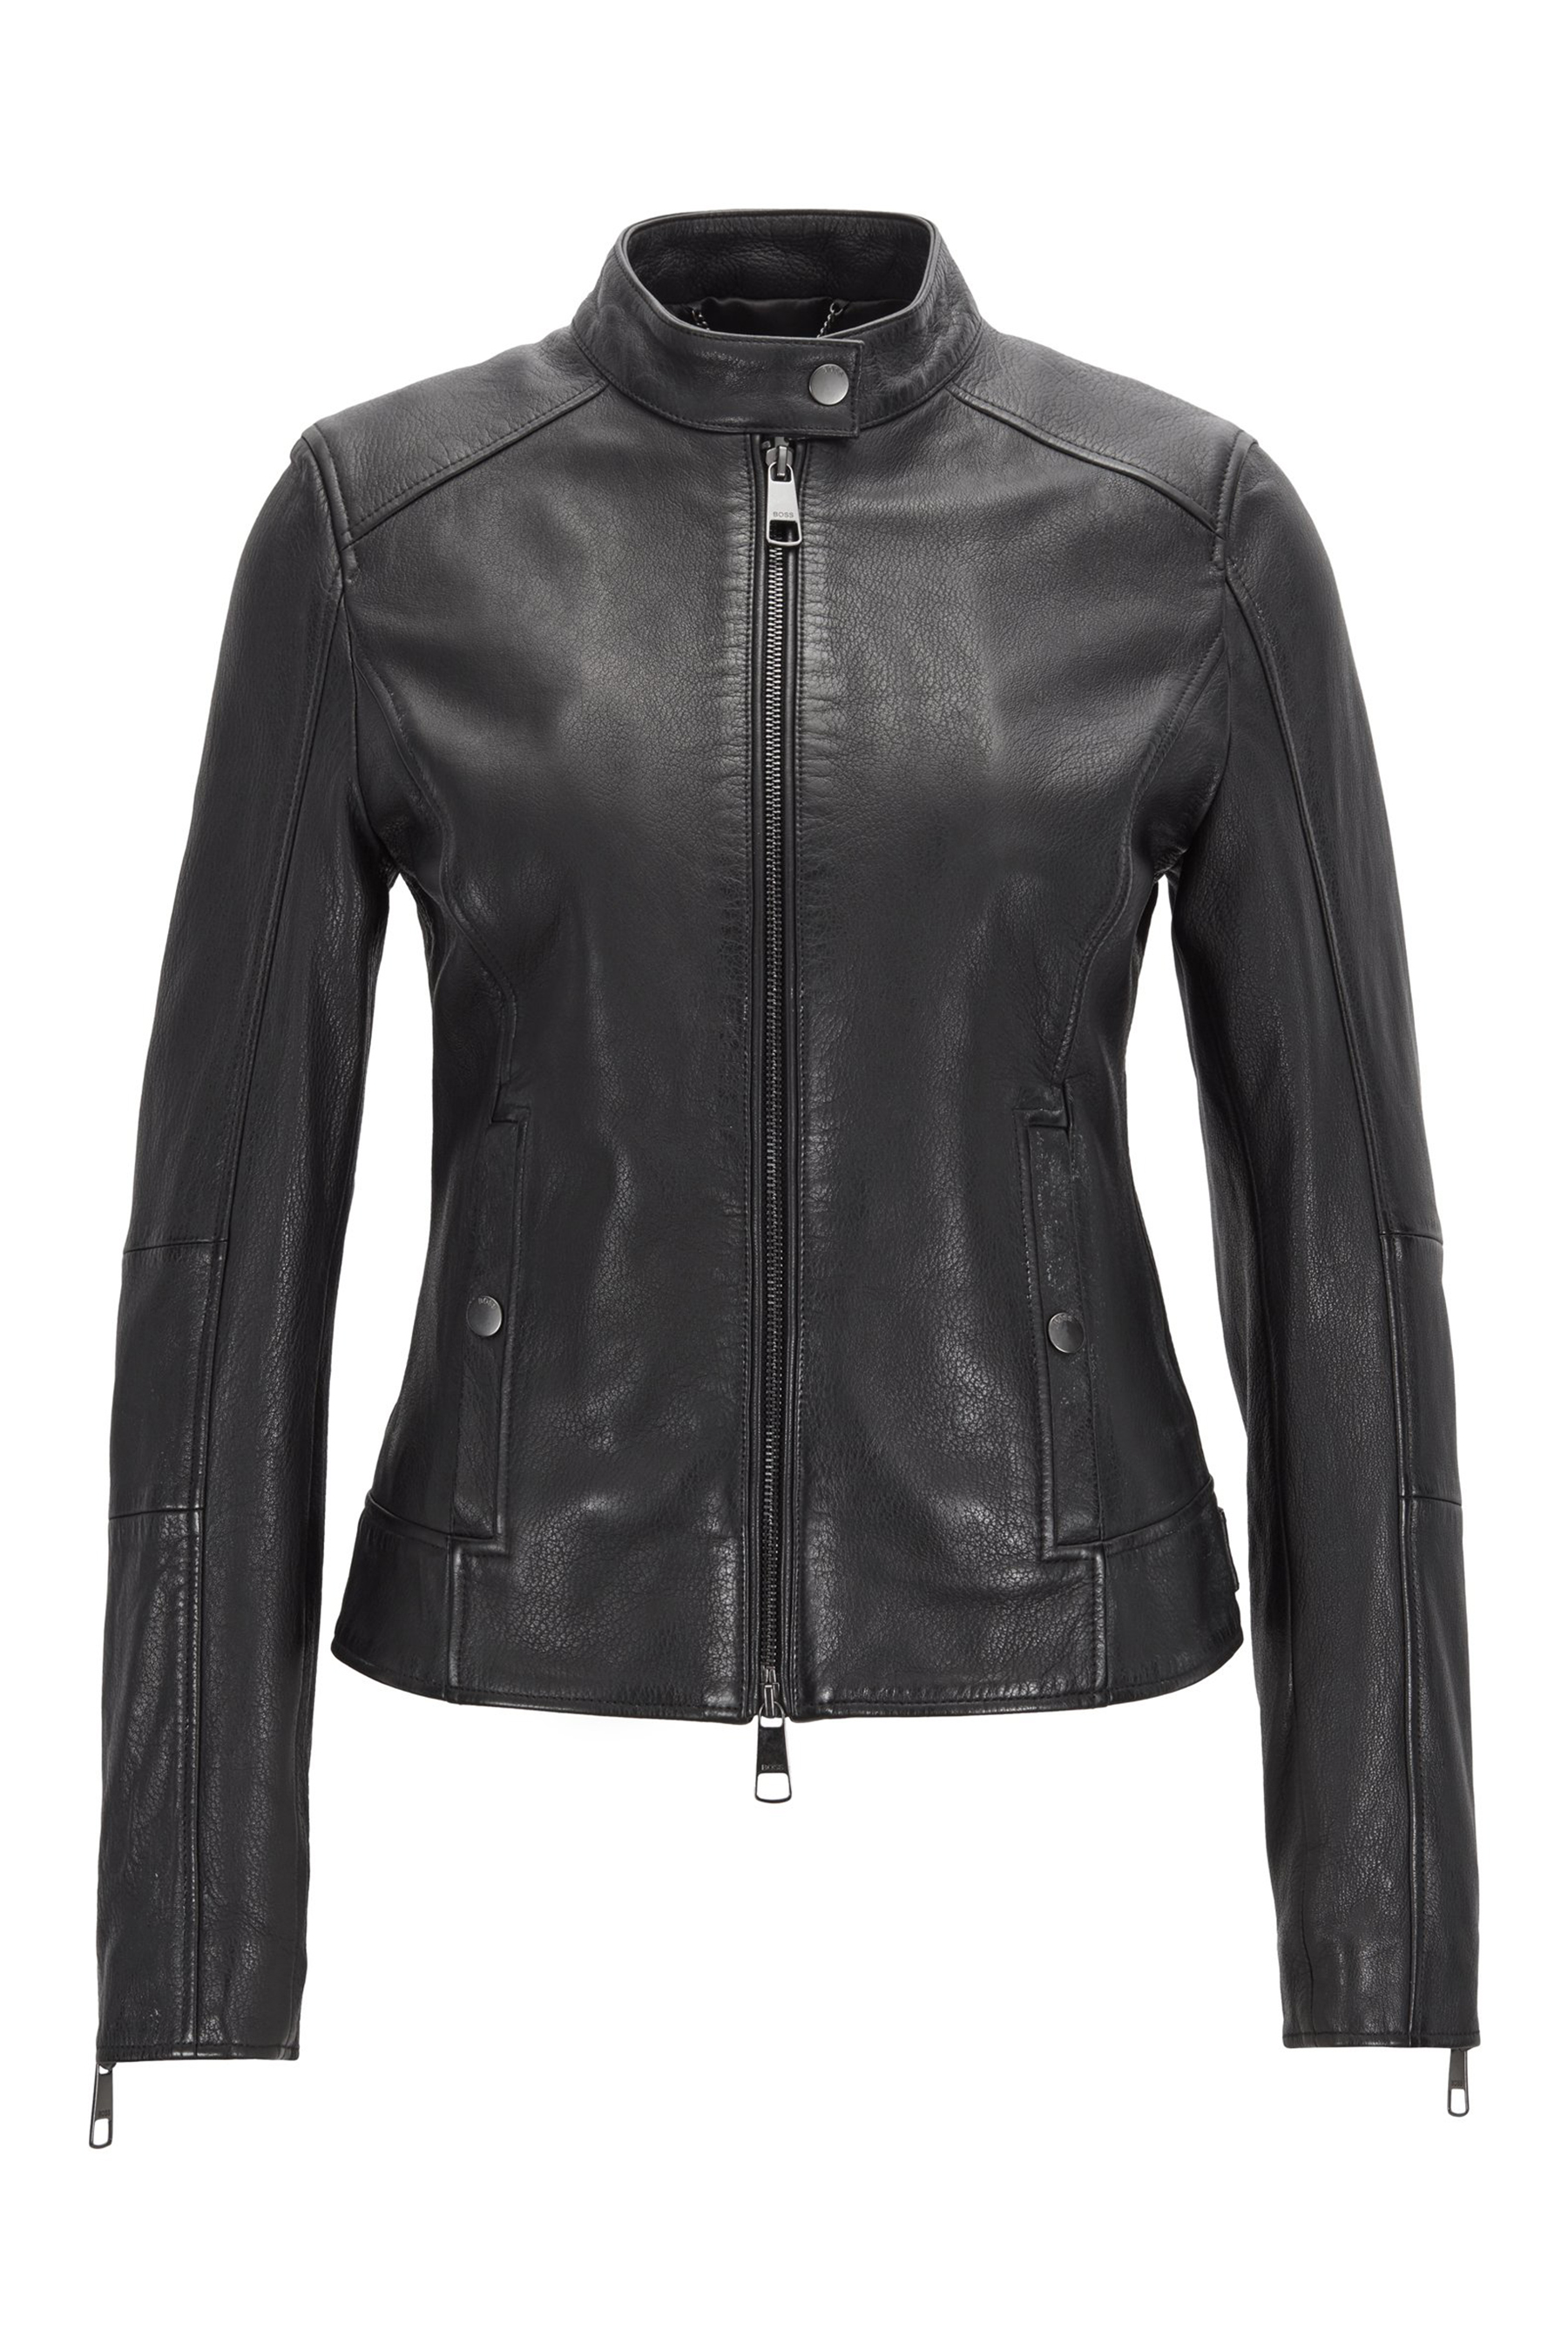 7fc0bef345 Biker jacket in structured nappa leather with stand collar